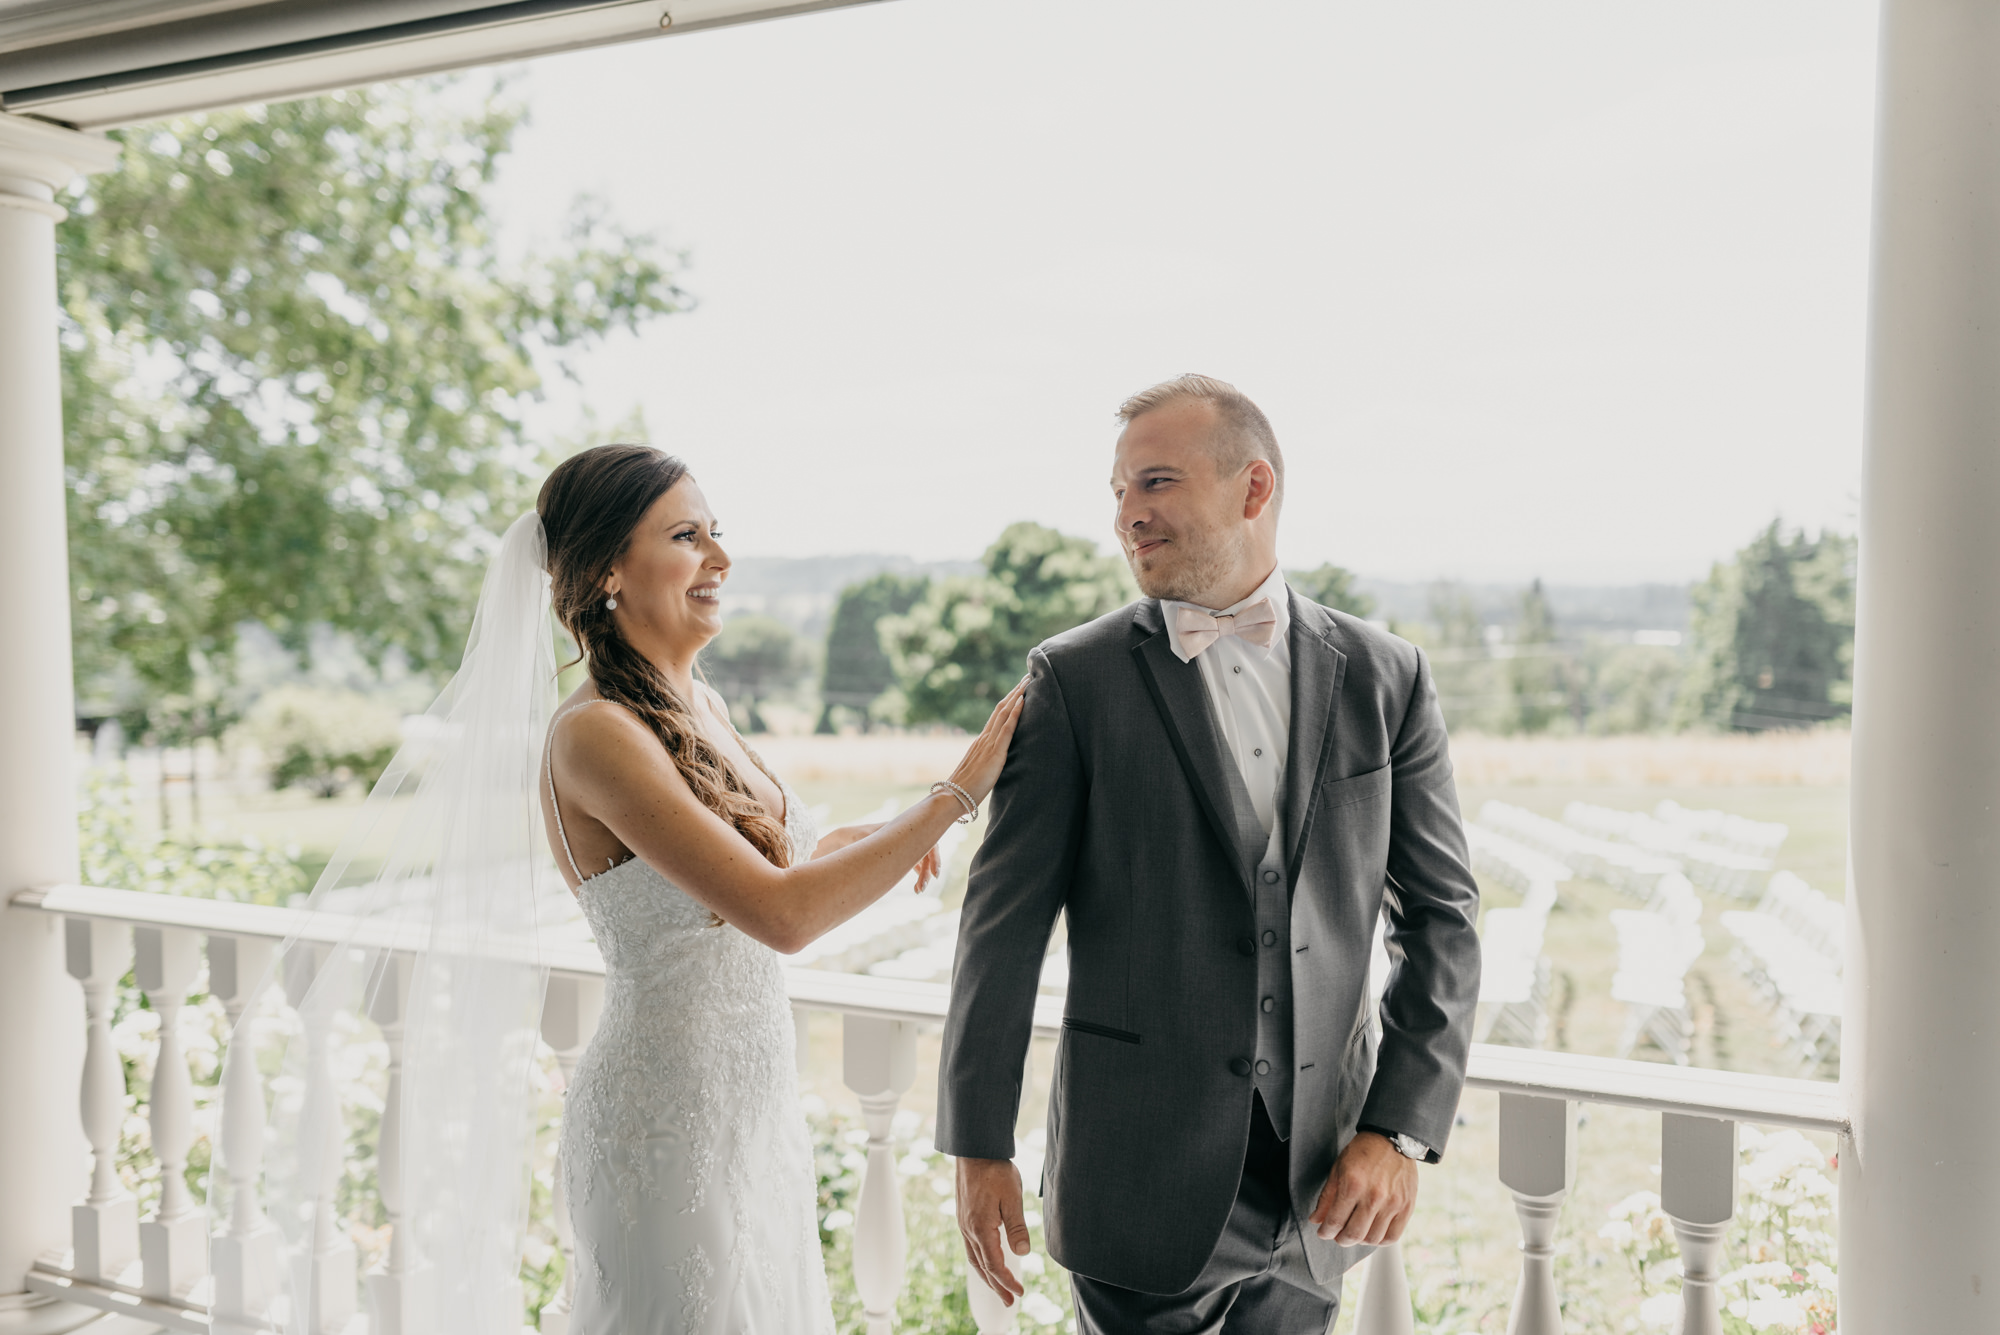 55-first-look-barn-kestrel-wedding-lake-oswego-wedding.jpg